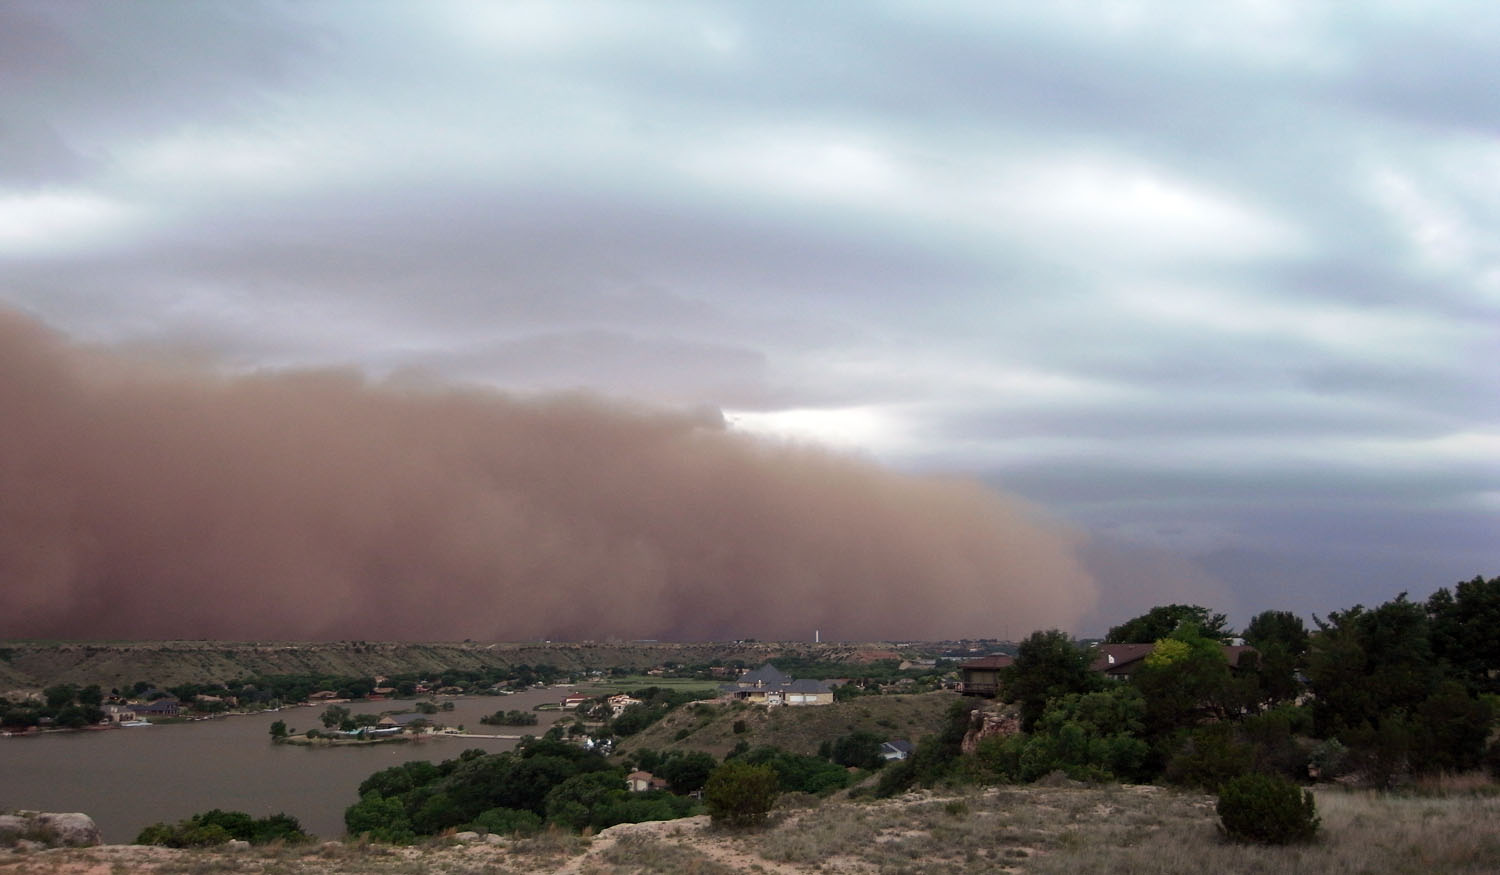 Dust storms can spread disease and will have disastrous effects on agriculture